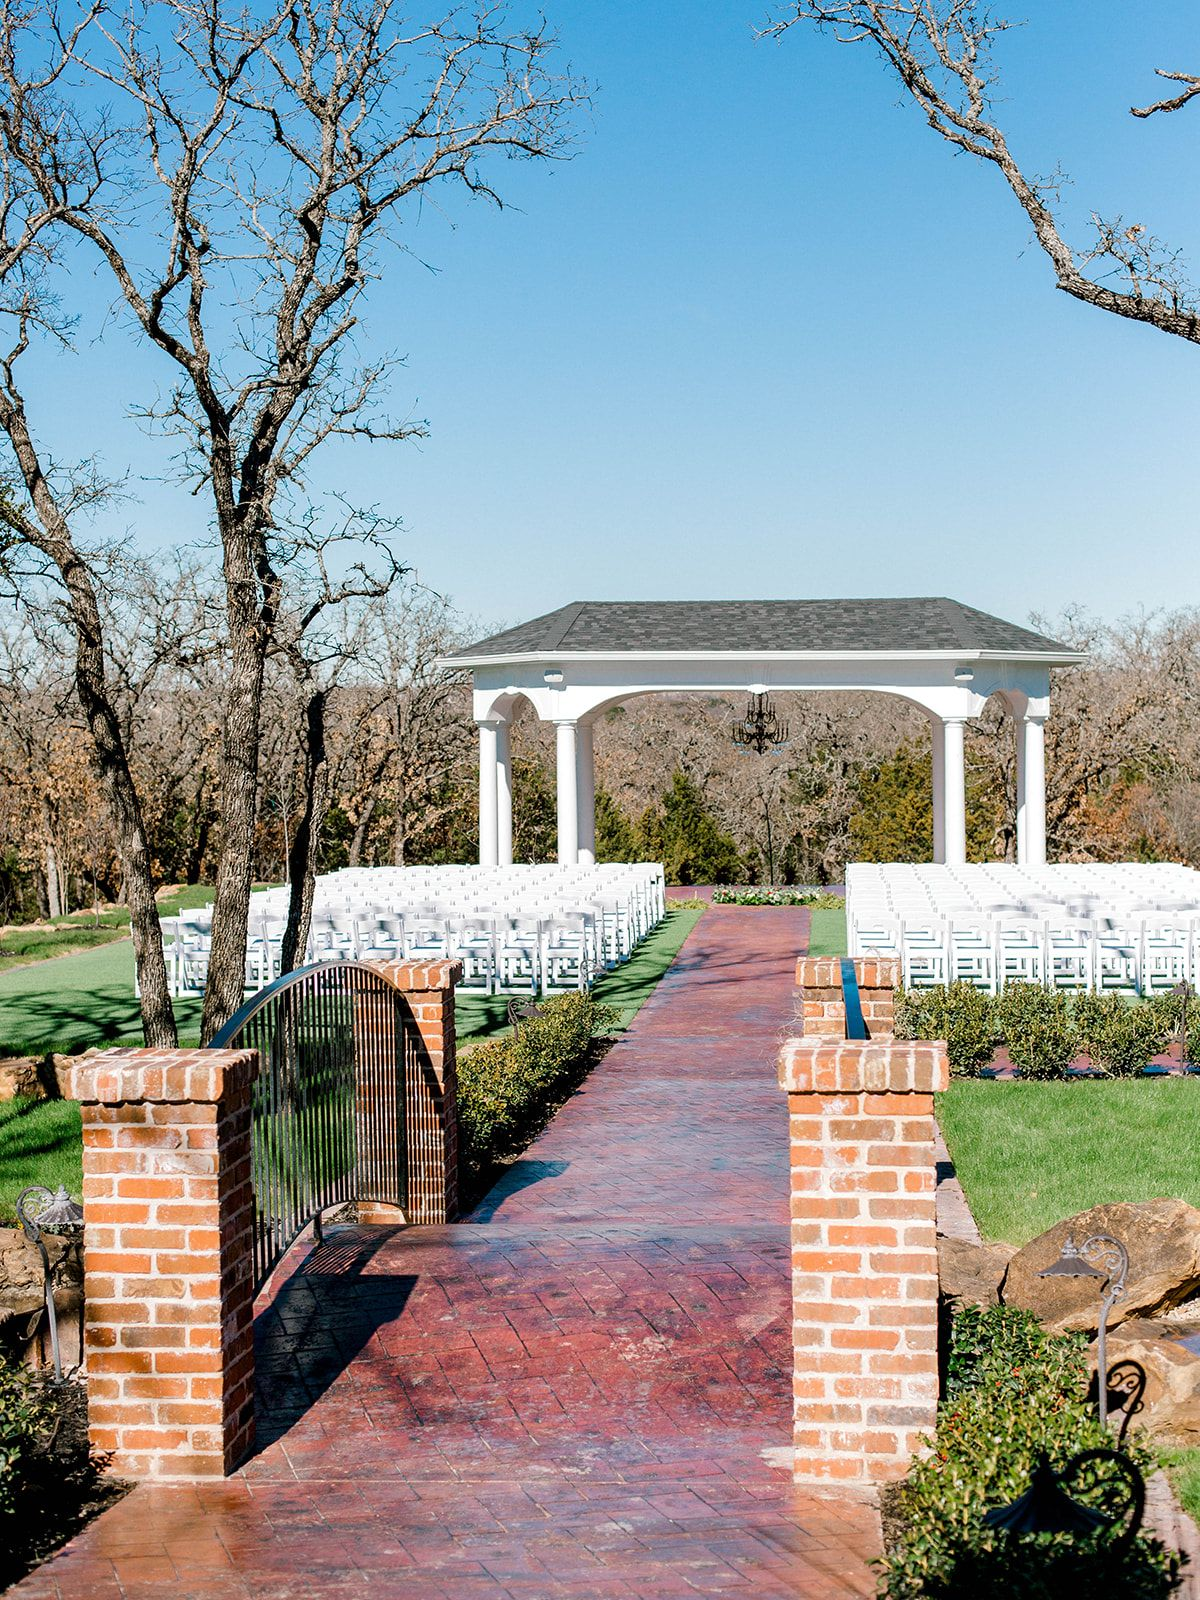 Outdoor Fort Worth Wedding Venue Outdoor Dfw Wedding Venue North Texas Wedding Venue Elegant Fo Wedding Venues Dfw Wedding Venues Dallas Wedding Venues